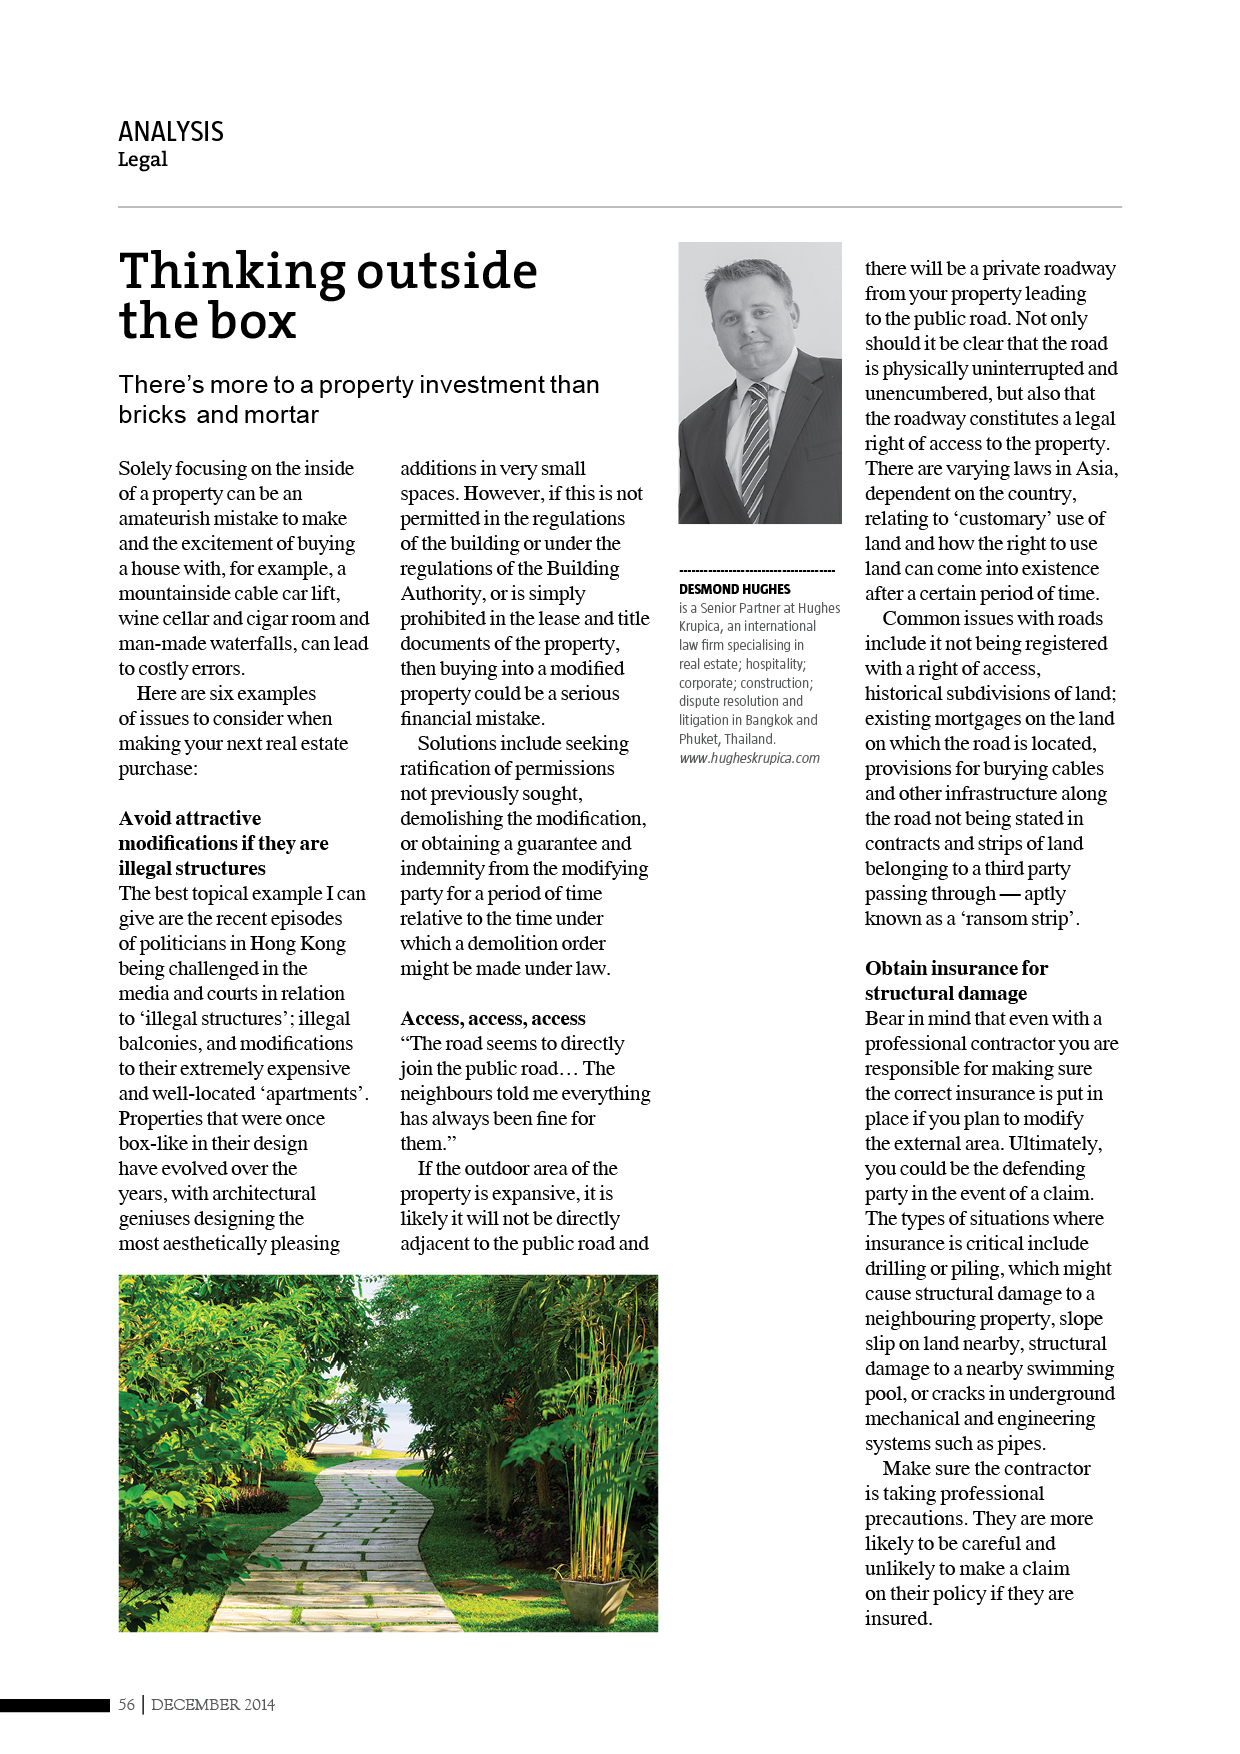 Thinking Outside the Real Estate Box